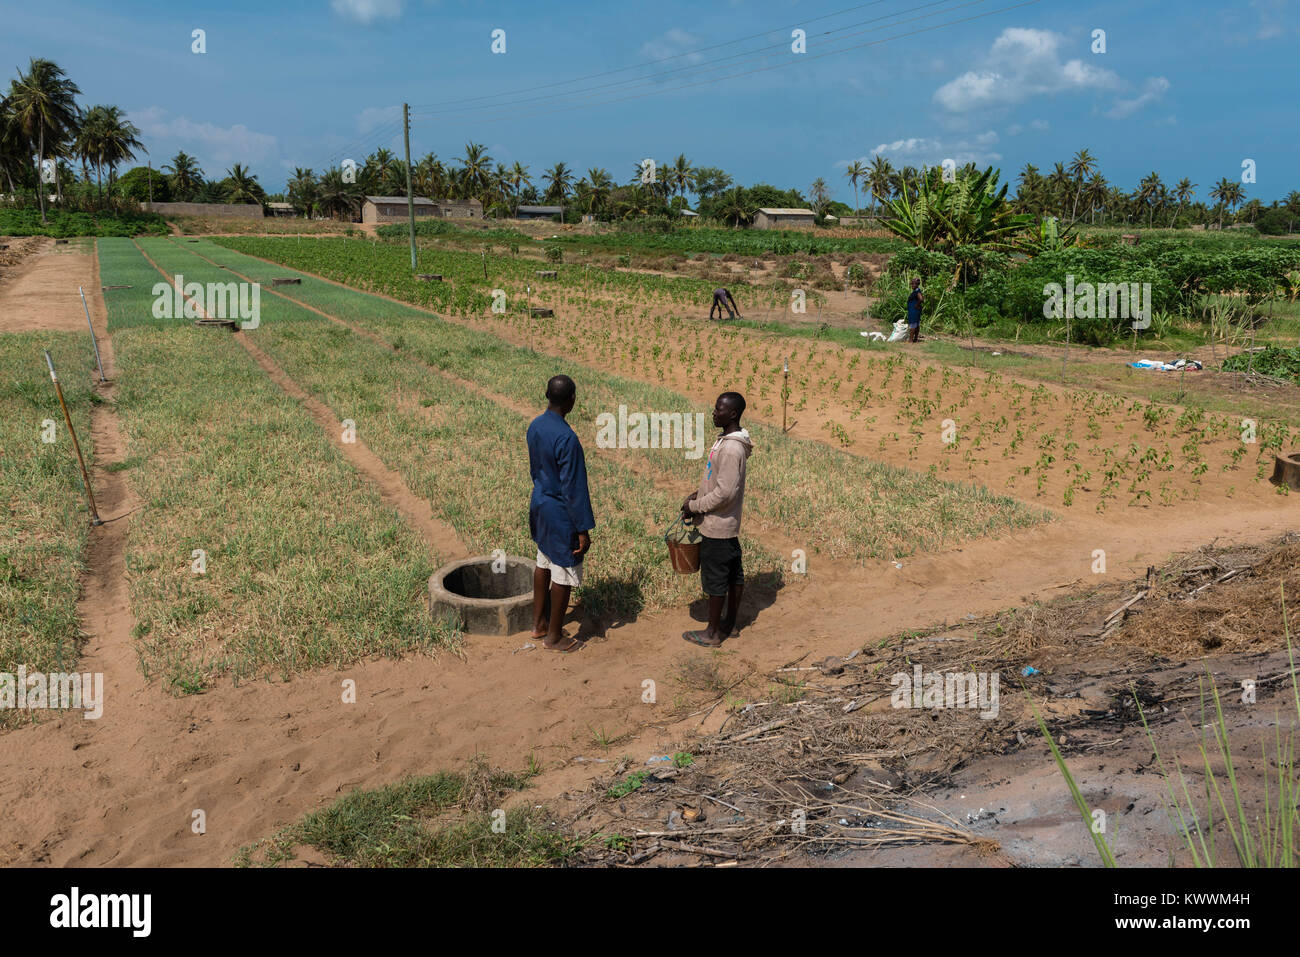 Dry and sandy fields of challots and cassava, Anloga,  Volta Region, Ghana, Africa - Stock Image